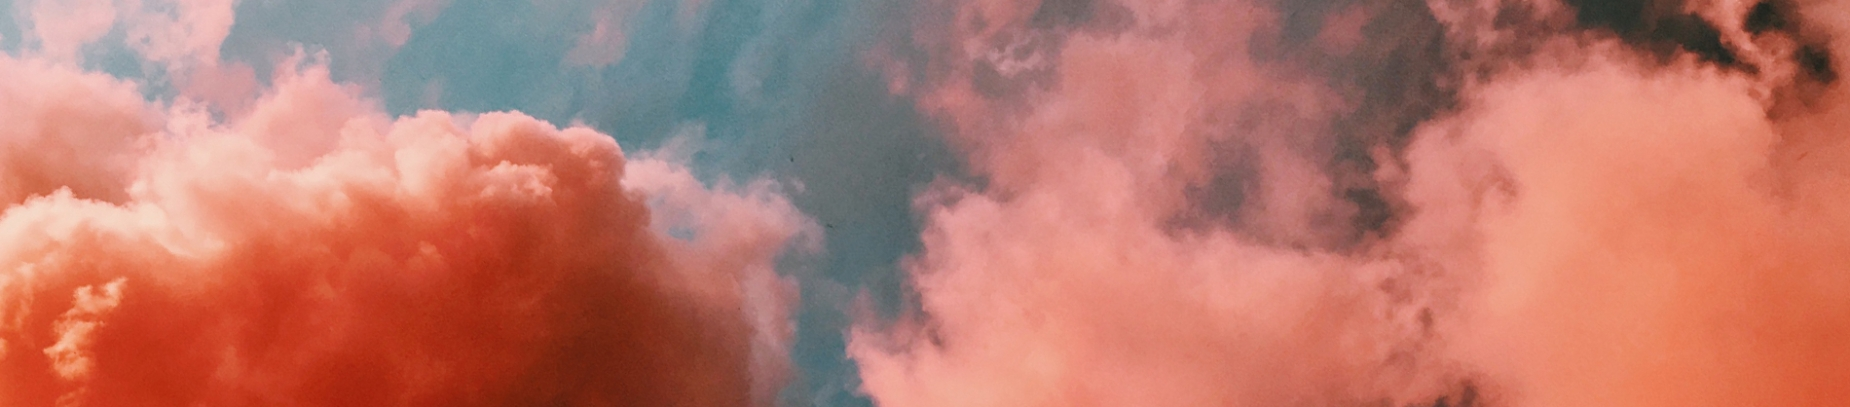 Pink and orange clouds in the sky